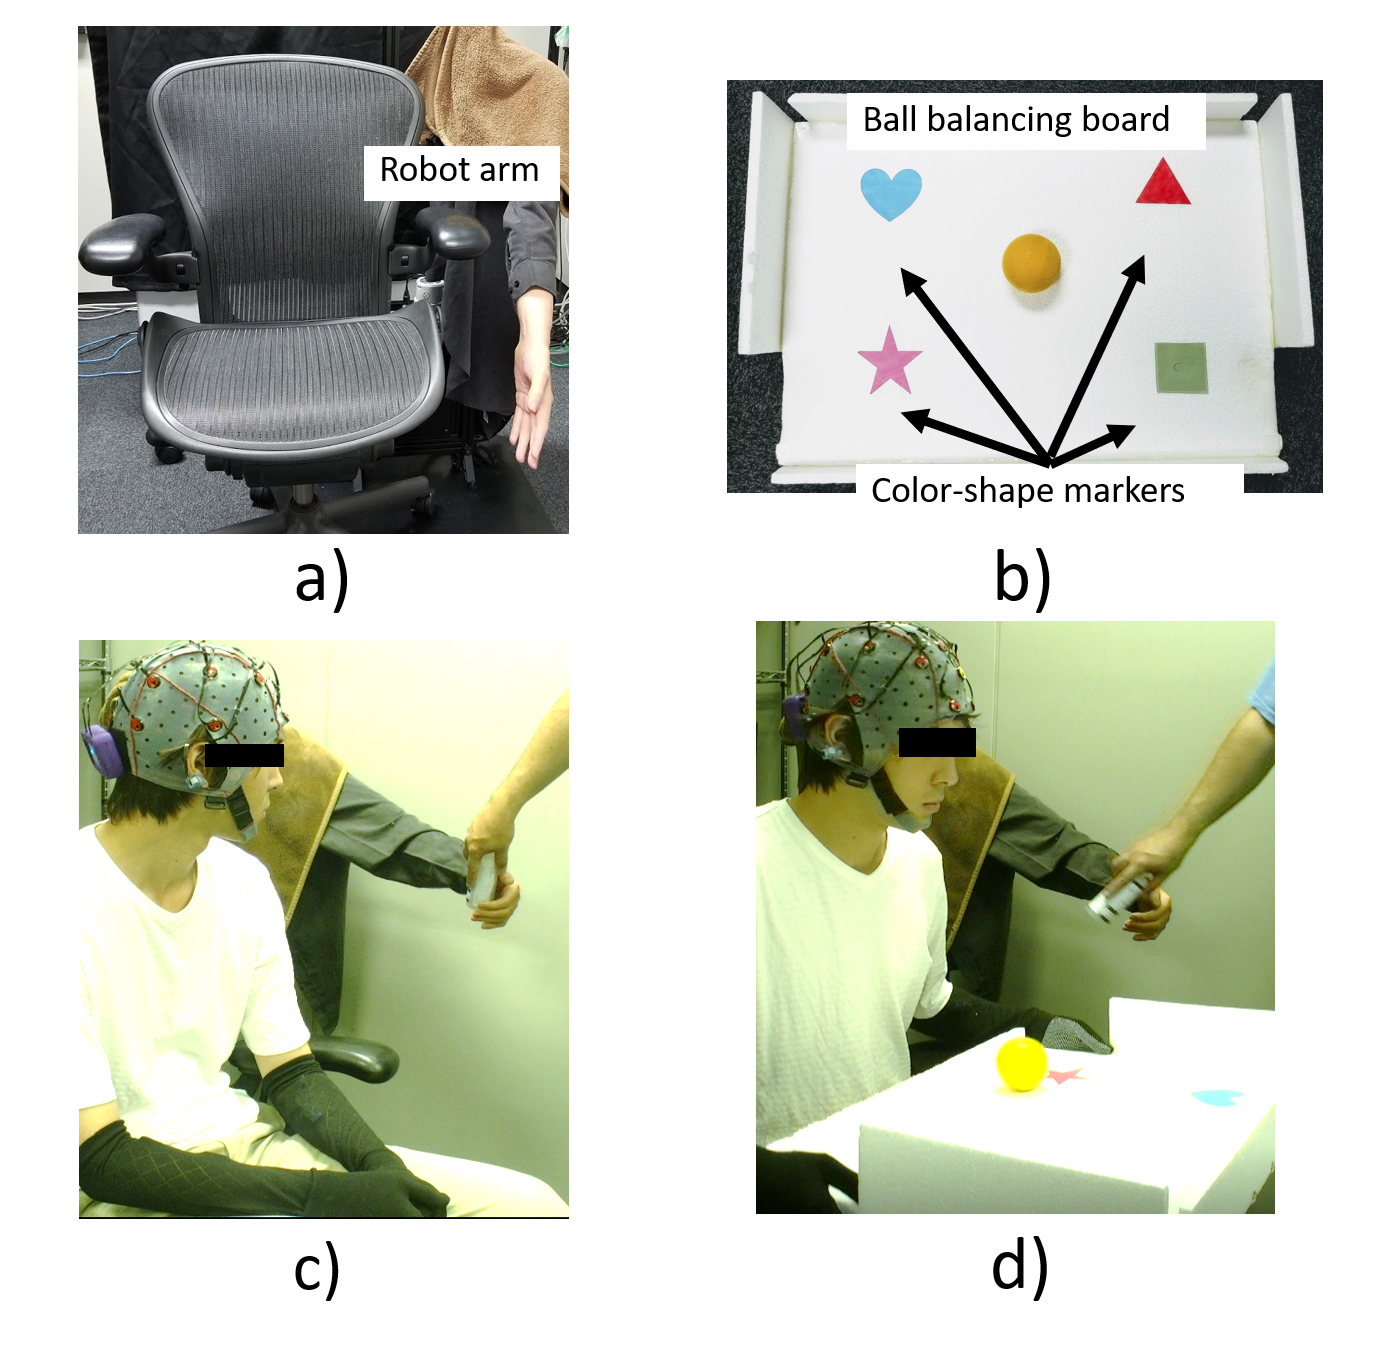 The scientists equipped an office chair with a human-like robotic arm on its side. (A) Then they gave people a ball-balancing board with color-shape markers. (B) These study participants then tried to grab or release a bottle using the robotic arm. (C) The people were tested for their multitasking ability as they grabbed a bottle and simultaneously balanced a ball on a board. (Credit: Penaloza and Nishio, Sci. Robot. 3, eaat1228 (2018)